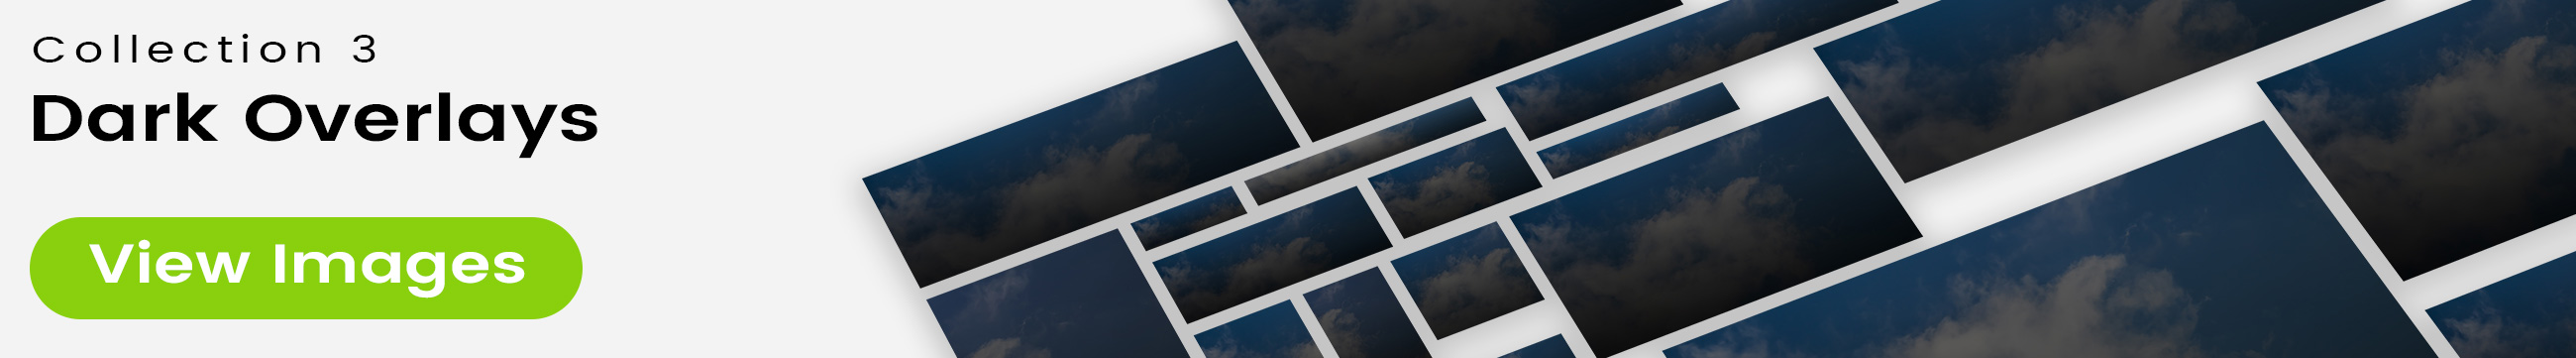 See 25 bonus images included with clouds stock image 9463. Collection 3 of 4 features a dark overlay design.